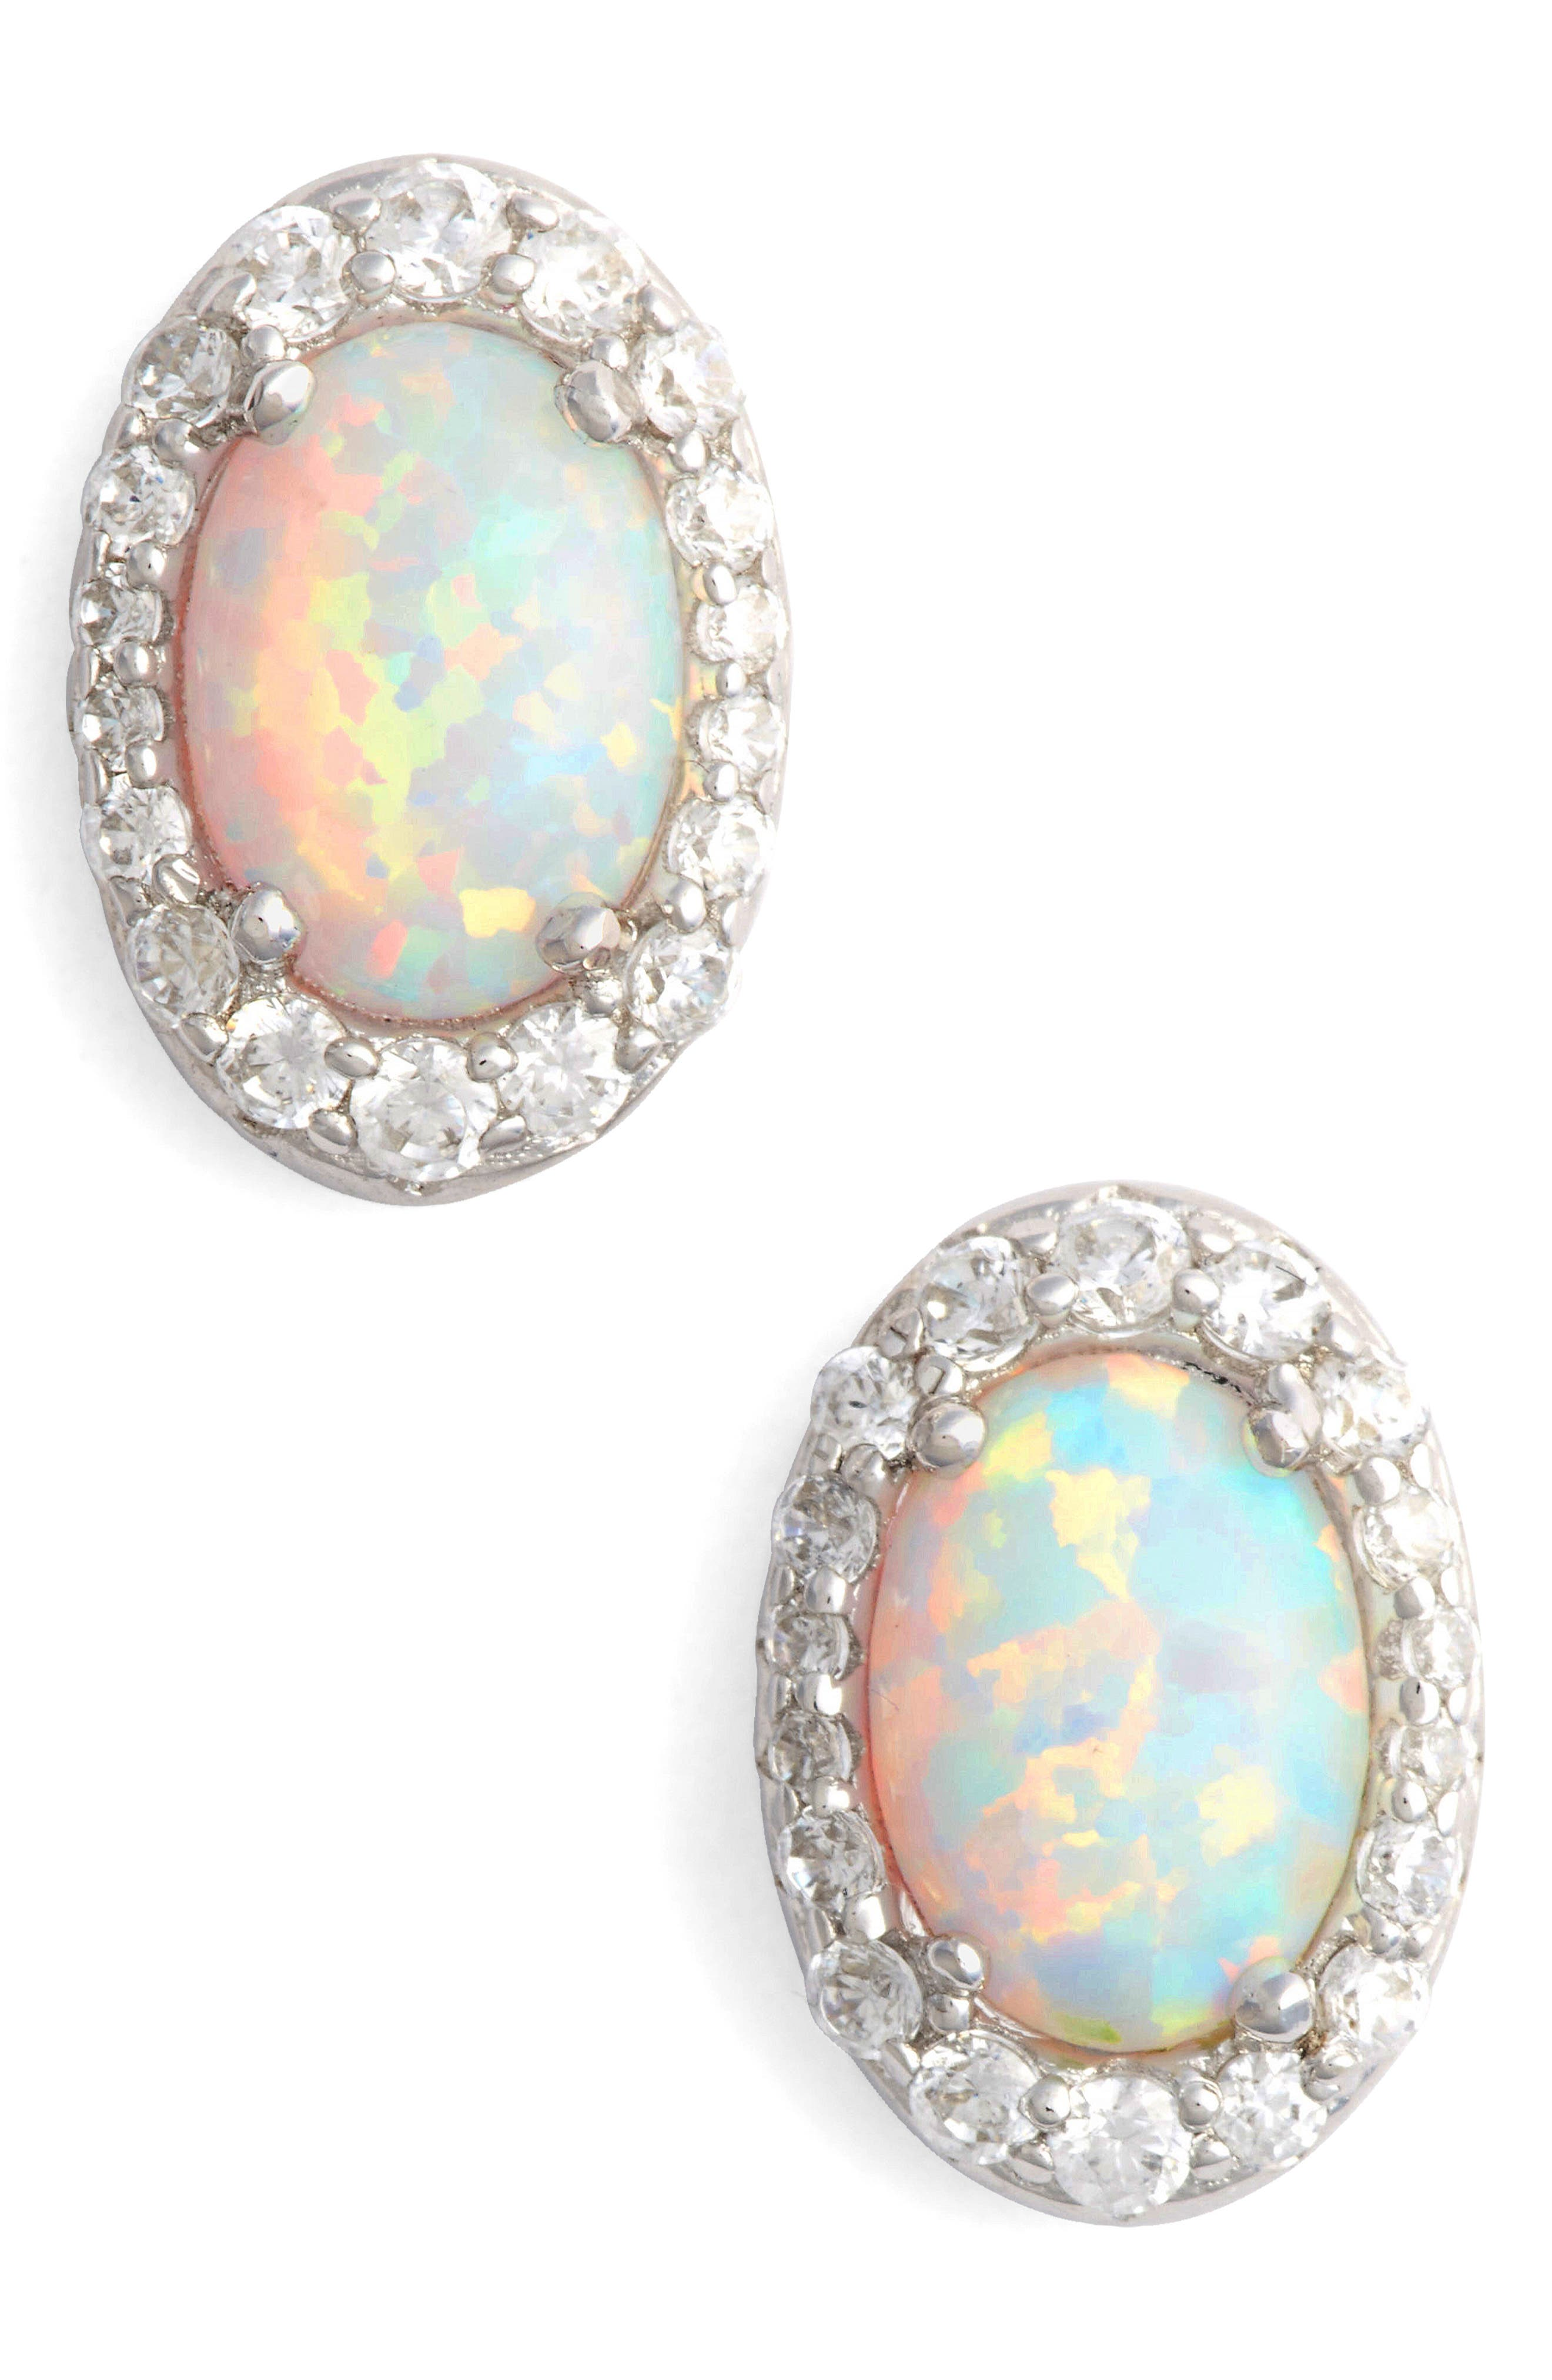 Simulated Opal Halo Stud Earrings,                         Main,                         color, Silver/ Opal/ Clear